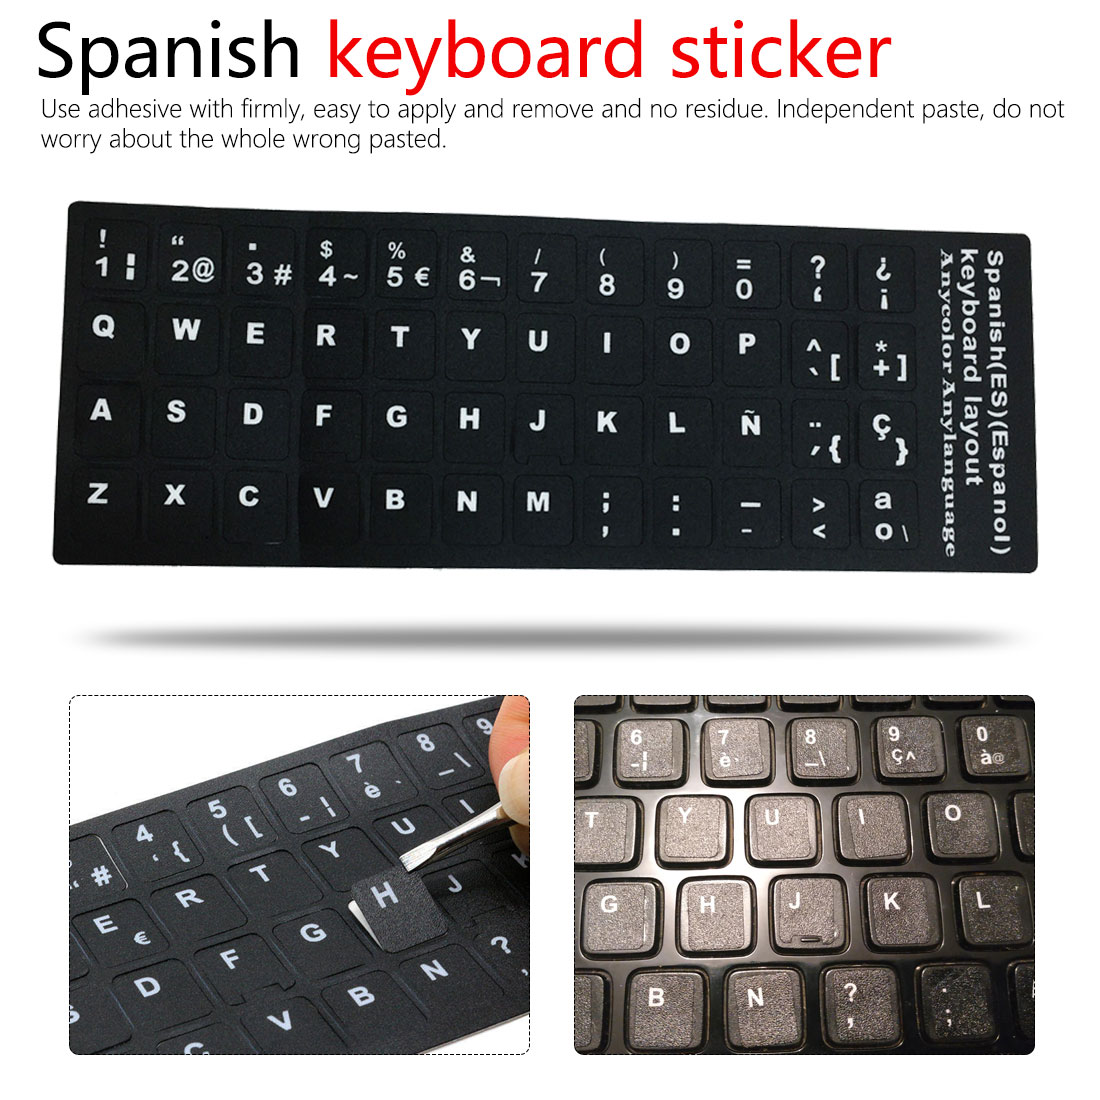 Buy 2 PCS Removable Silicone Laptop Keyboard Skin Cover for HP 15.6 BF  Keyboard Cover Waterproof Laptop Keyboard Protective Film in the online  store PZWG Tech Store at a price of 2.61